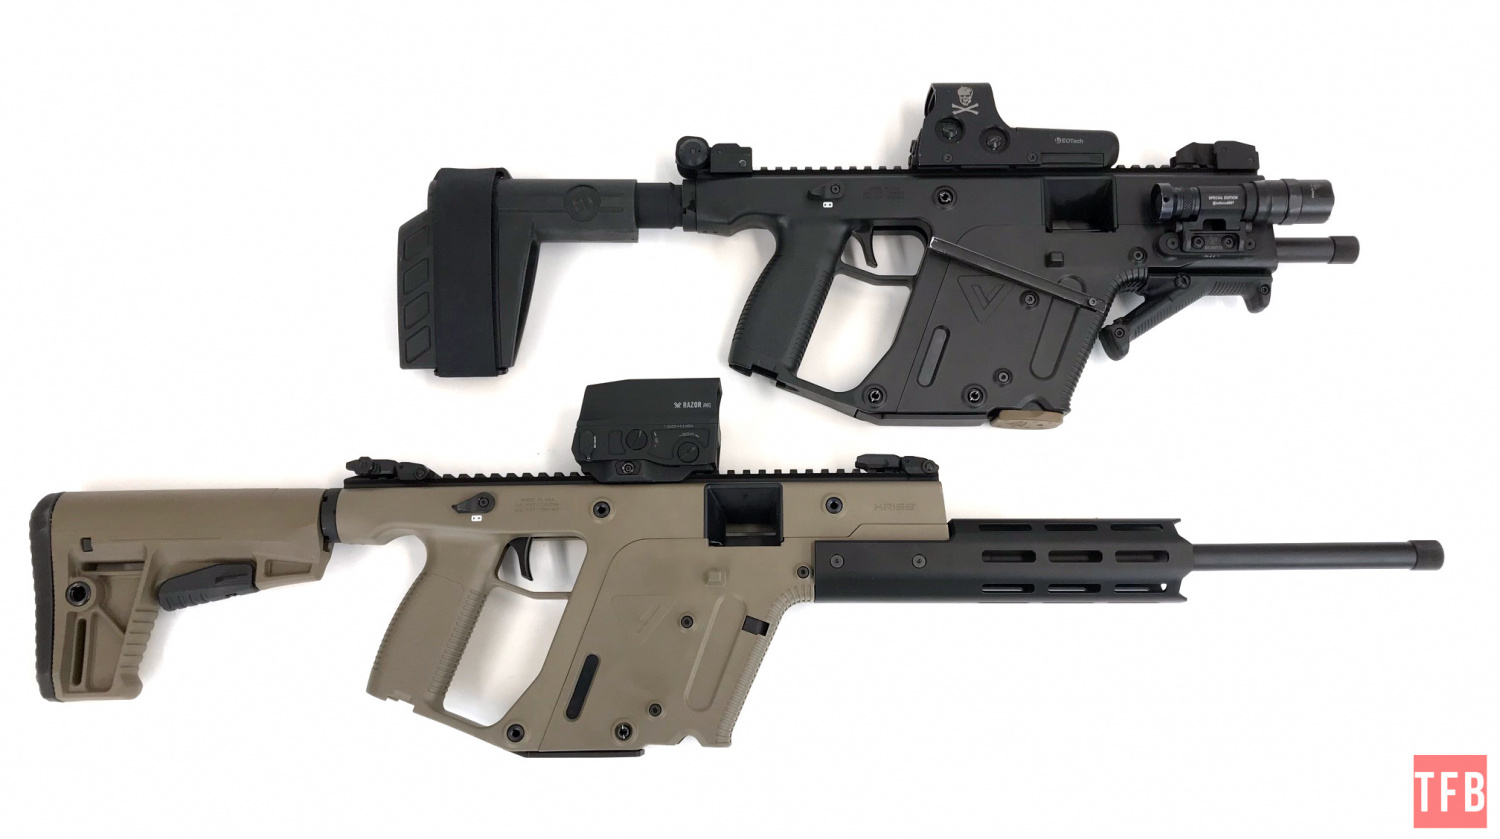 tfb review kriss vector 22 sdp crb the firearm blog tfb review kriss vector 22 sdp crb